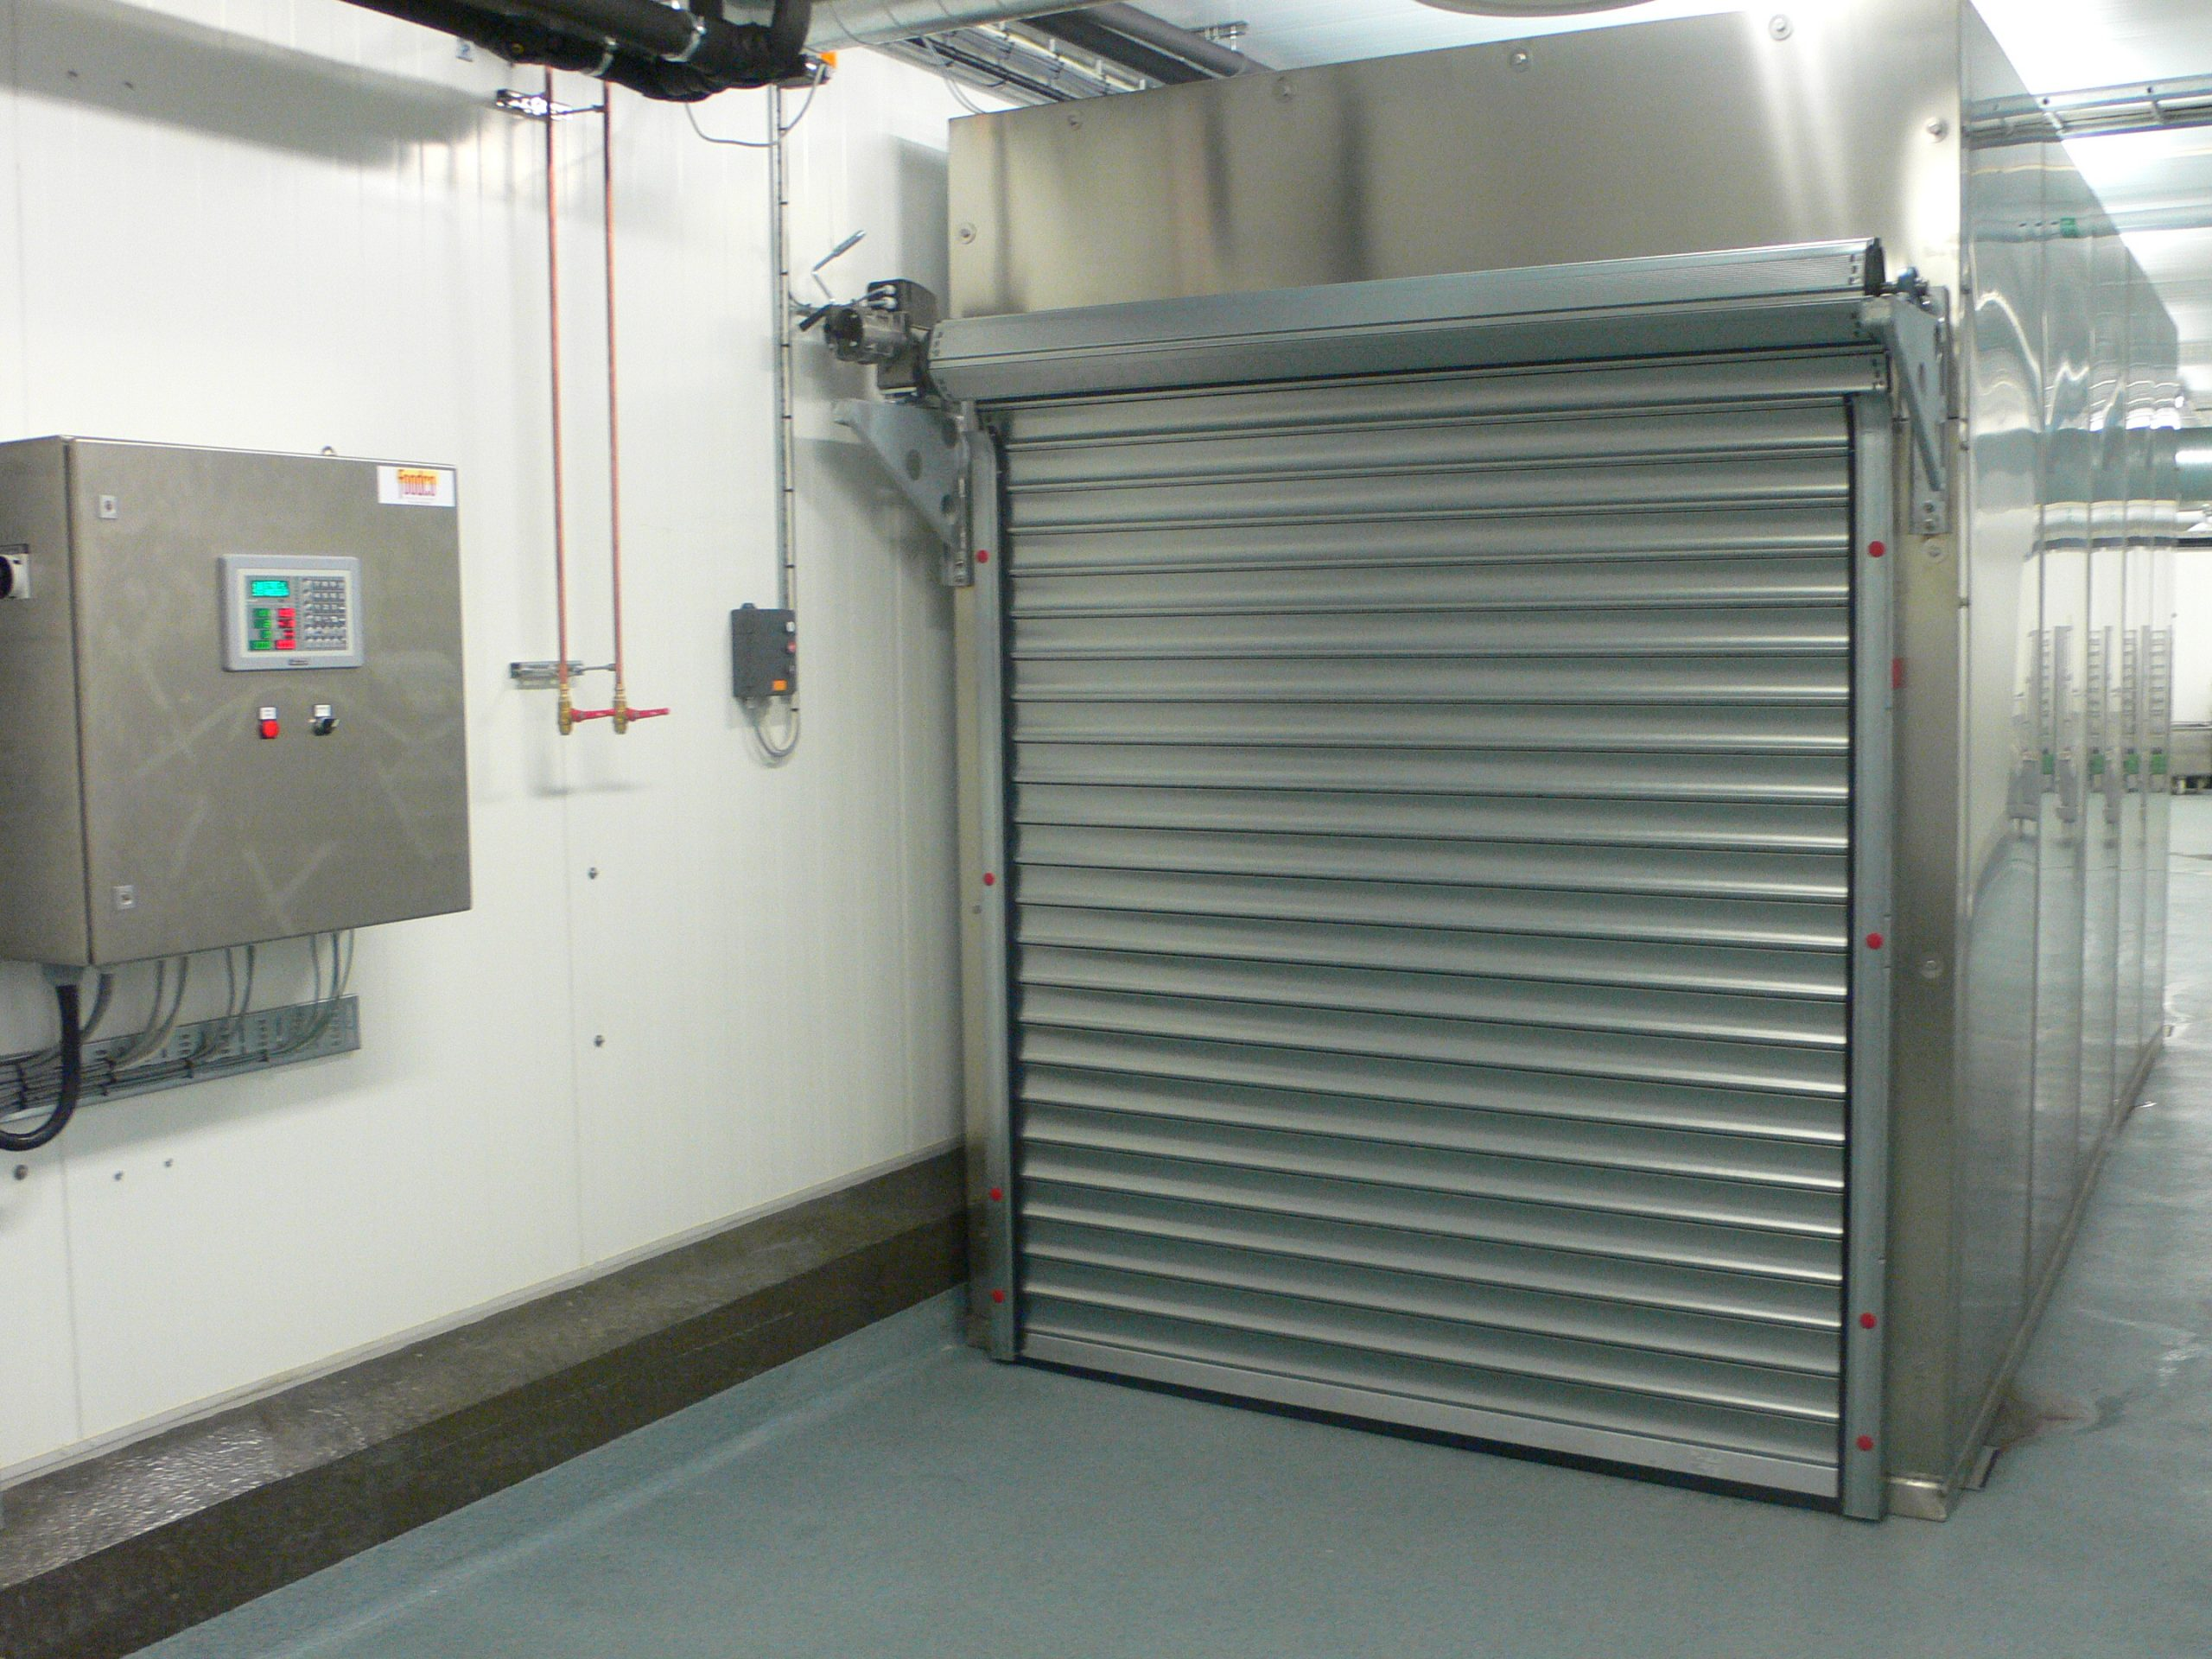 Foodco Global Machinery - An automatically operated defrosting process